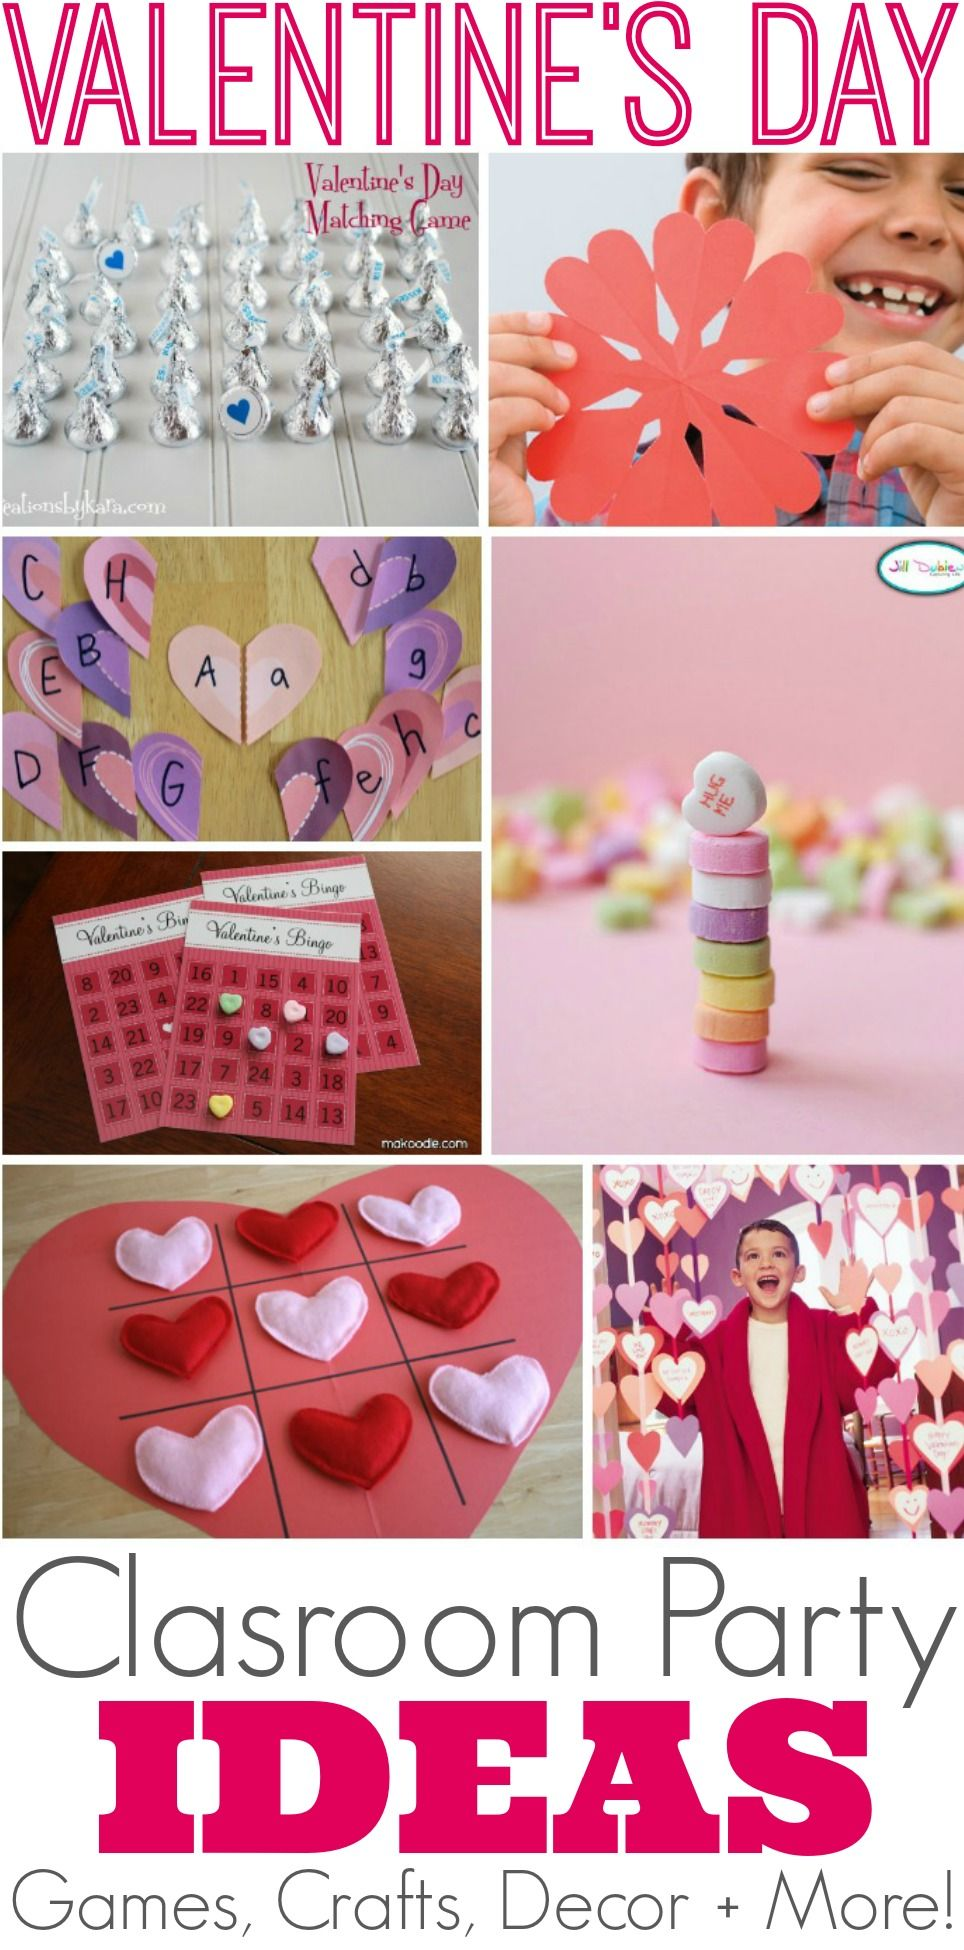 Creative Valentines Day Class Party Ideas With Classroom Games Crafts Decor And More Valentinesday Classparty